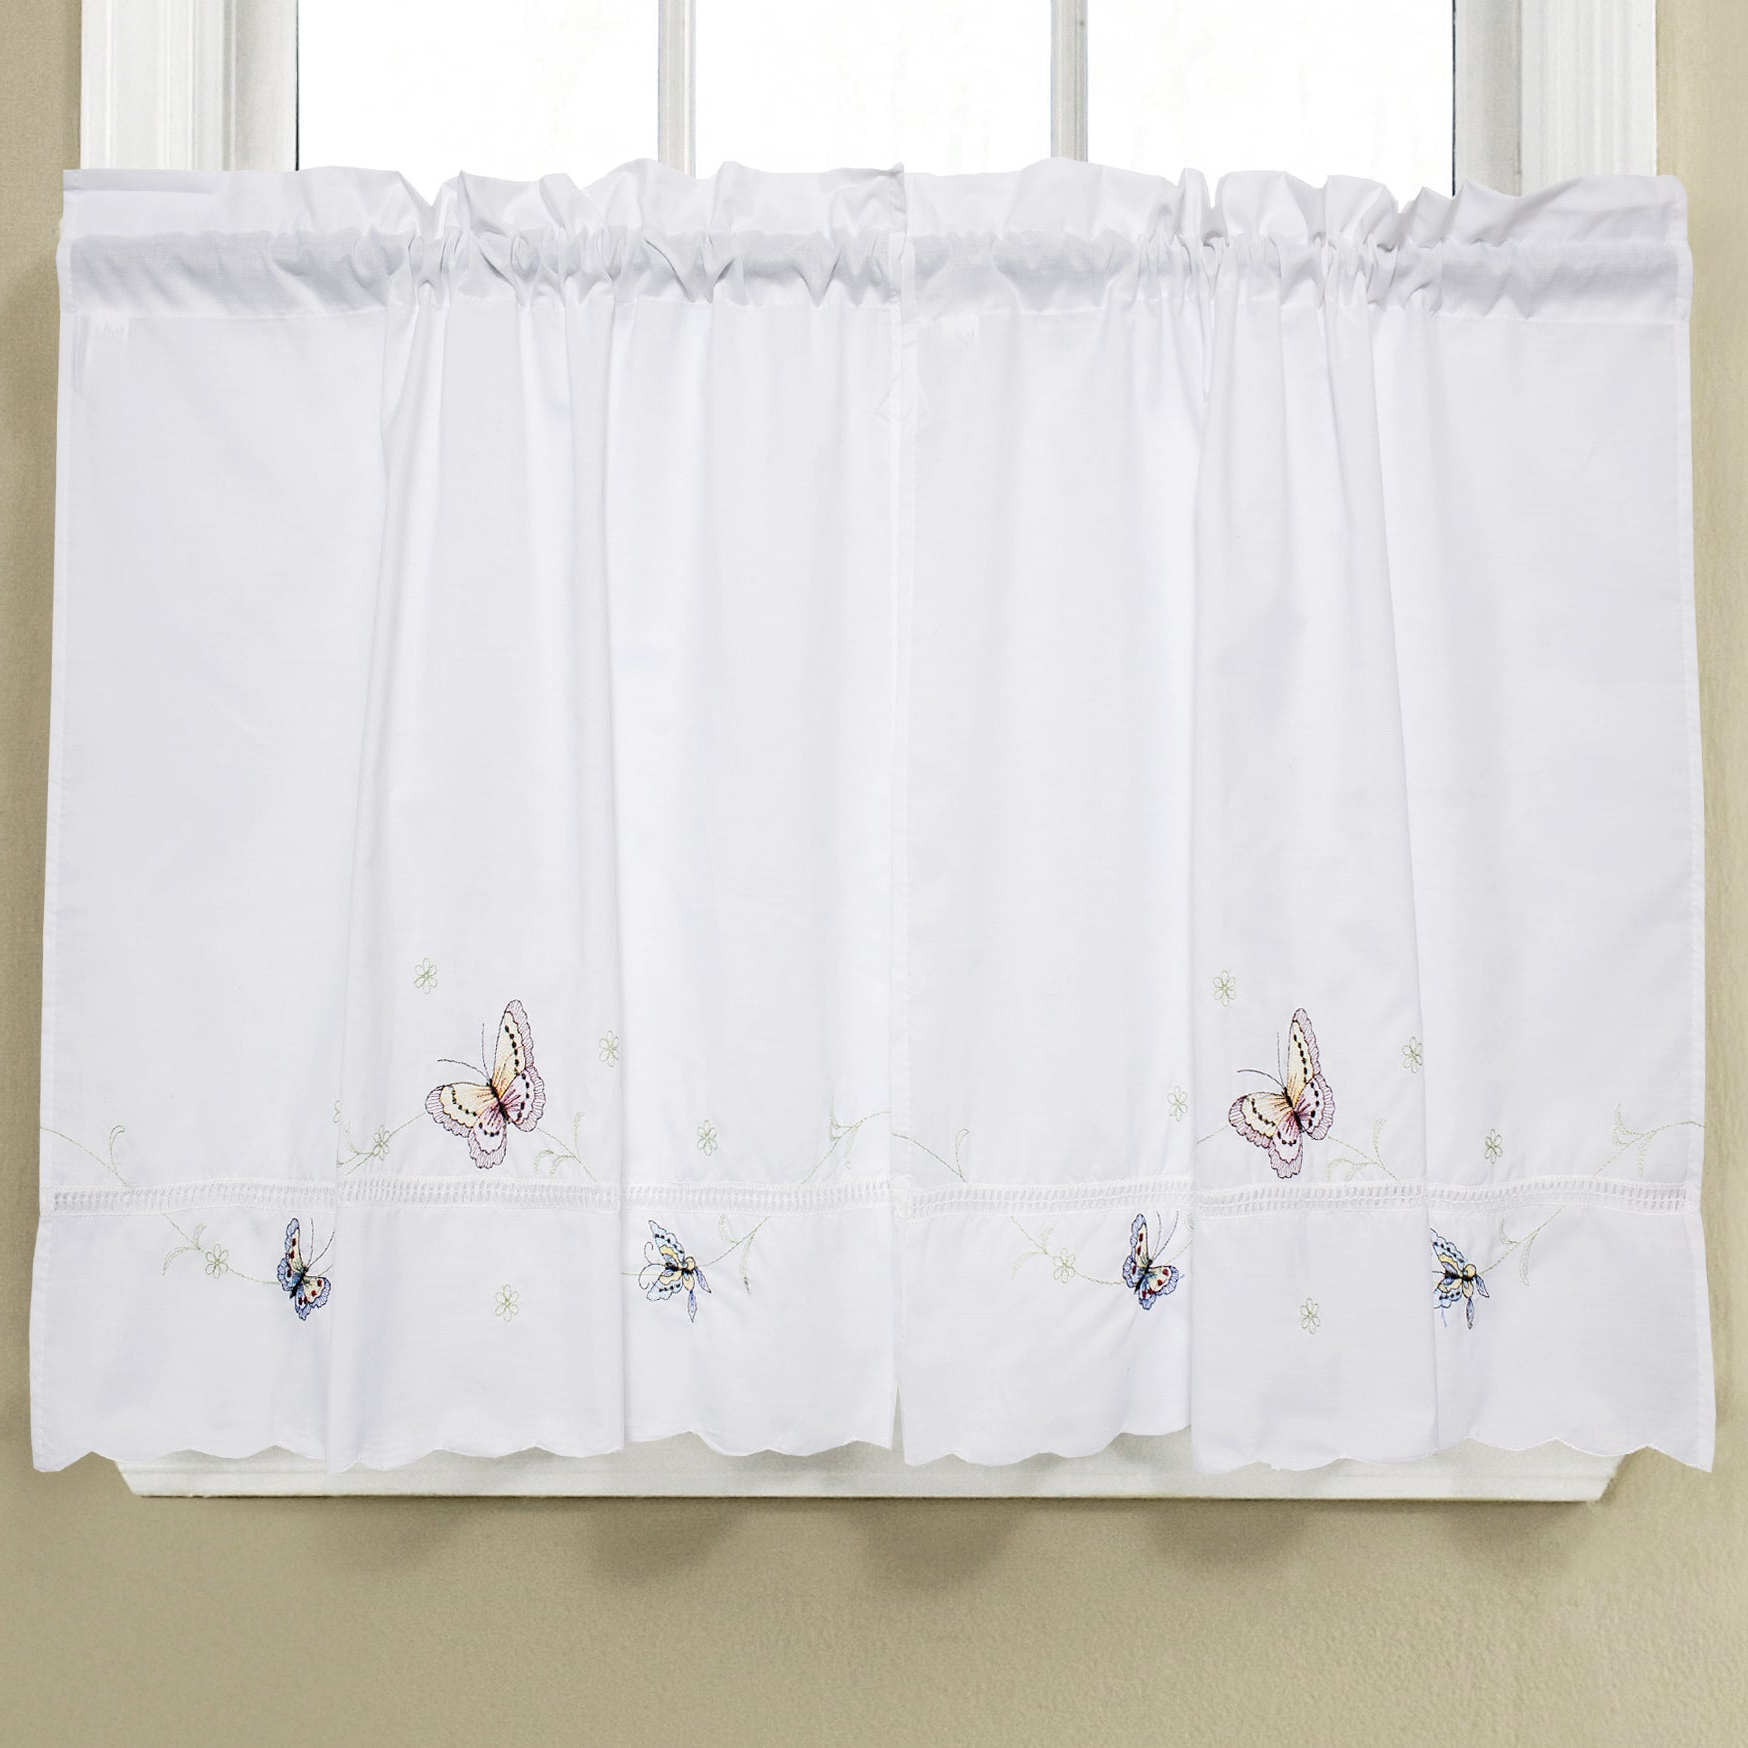 2020 Fluttering Butterfly White Embroidered Tier, Swag, Or Valance Kitchen Curtains With Regard To Fluttering Butterfly White Embroidered Tier, Swag, Or Valance Kitchen Curtains (View 3 of 20)